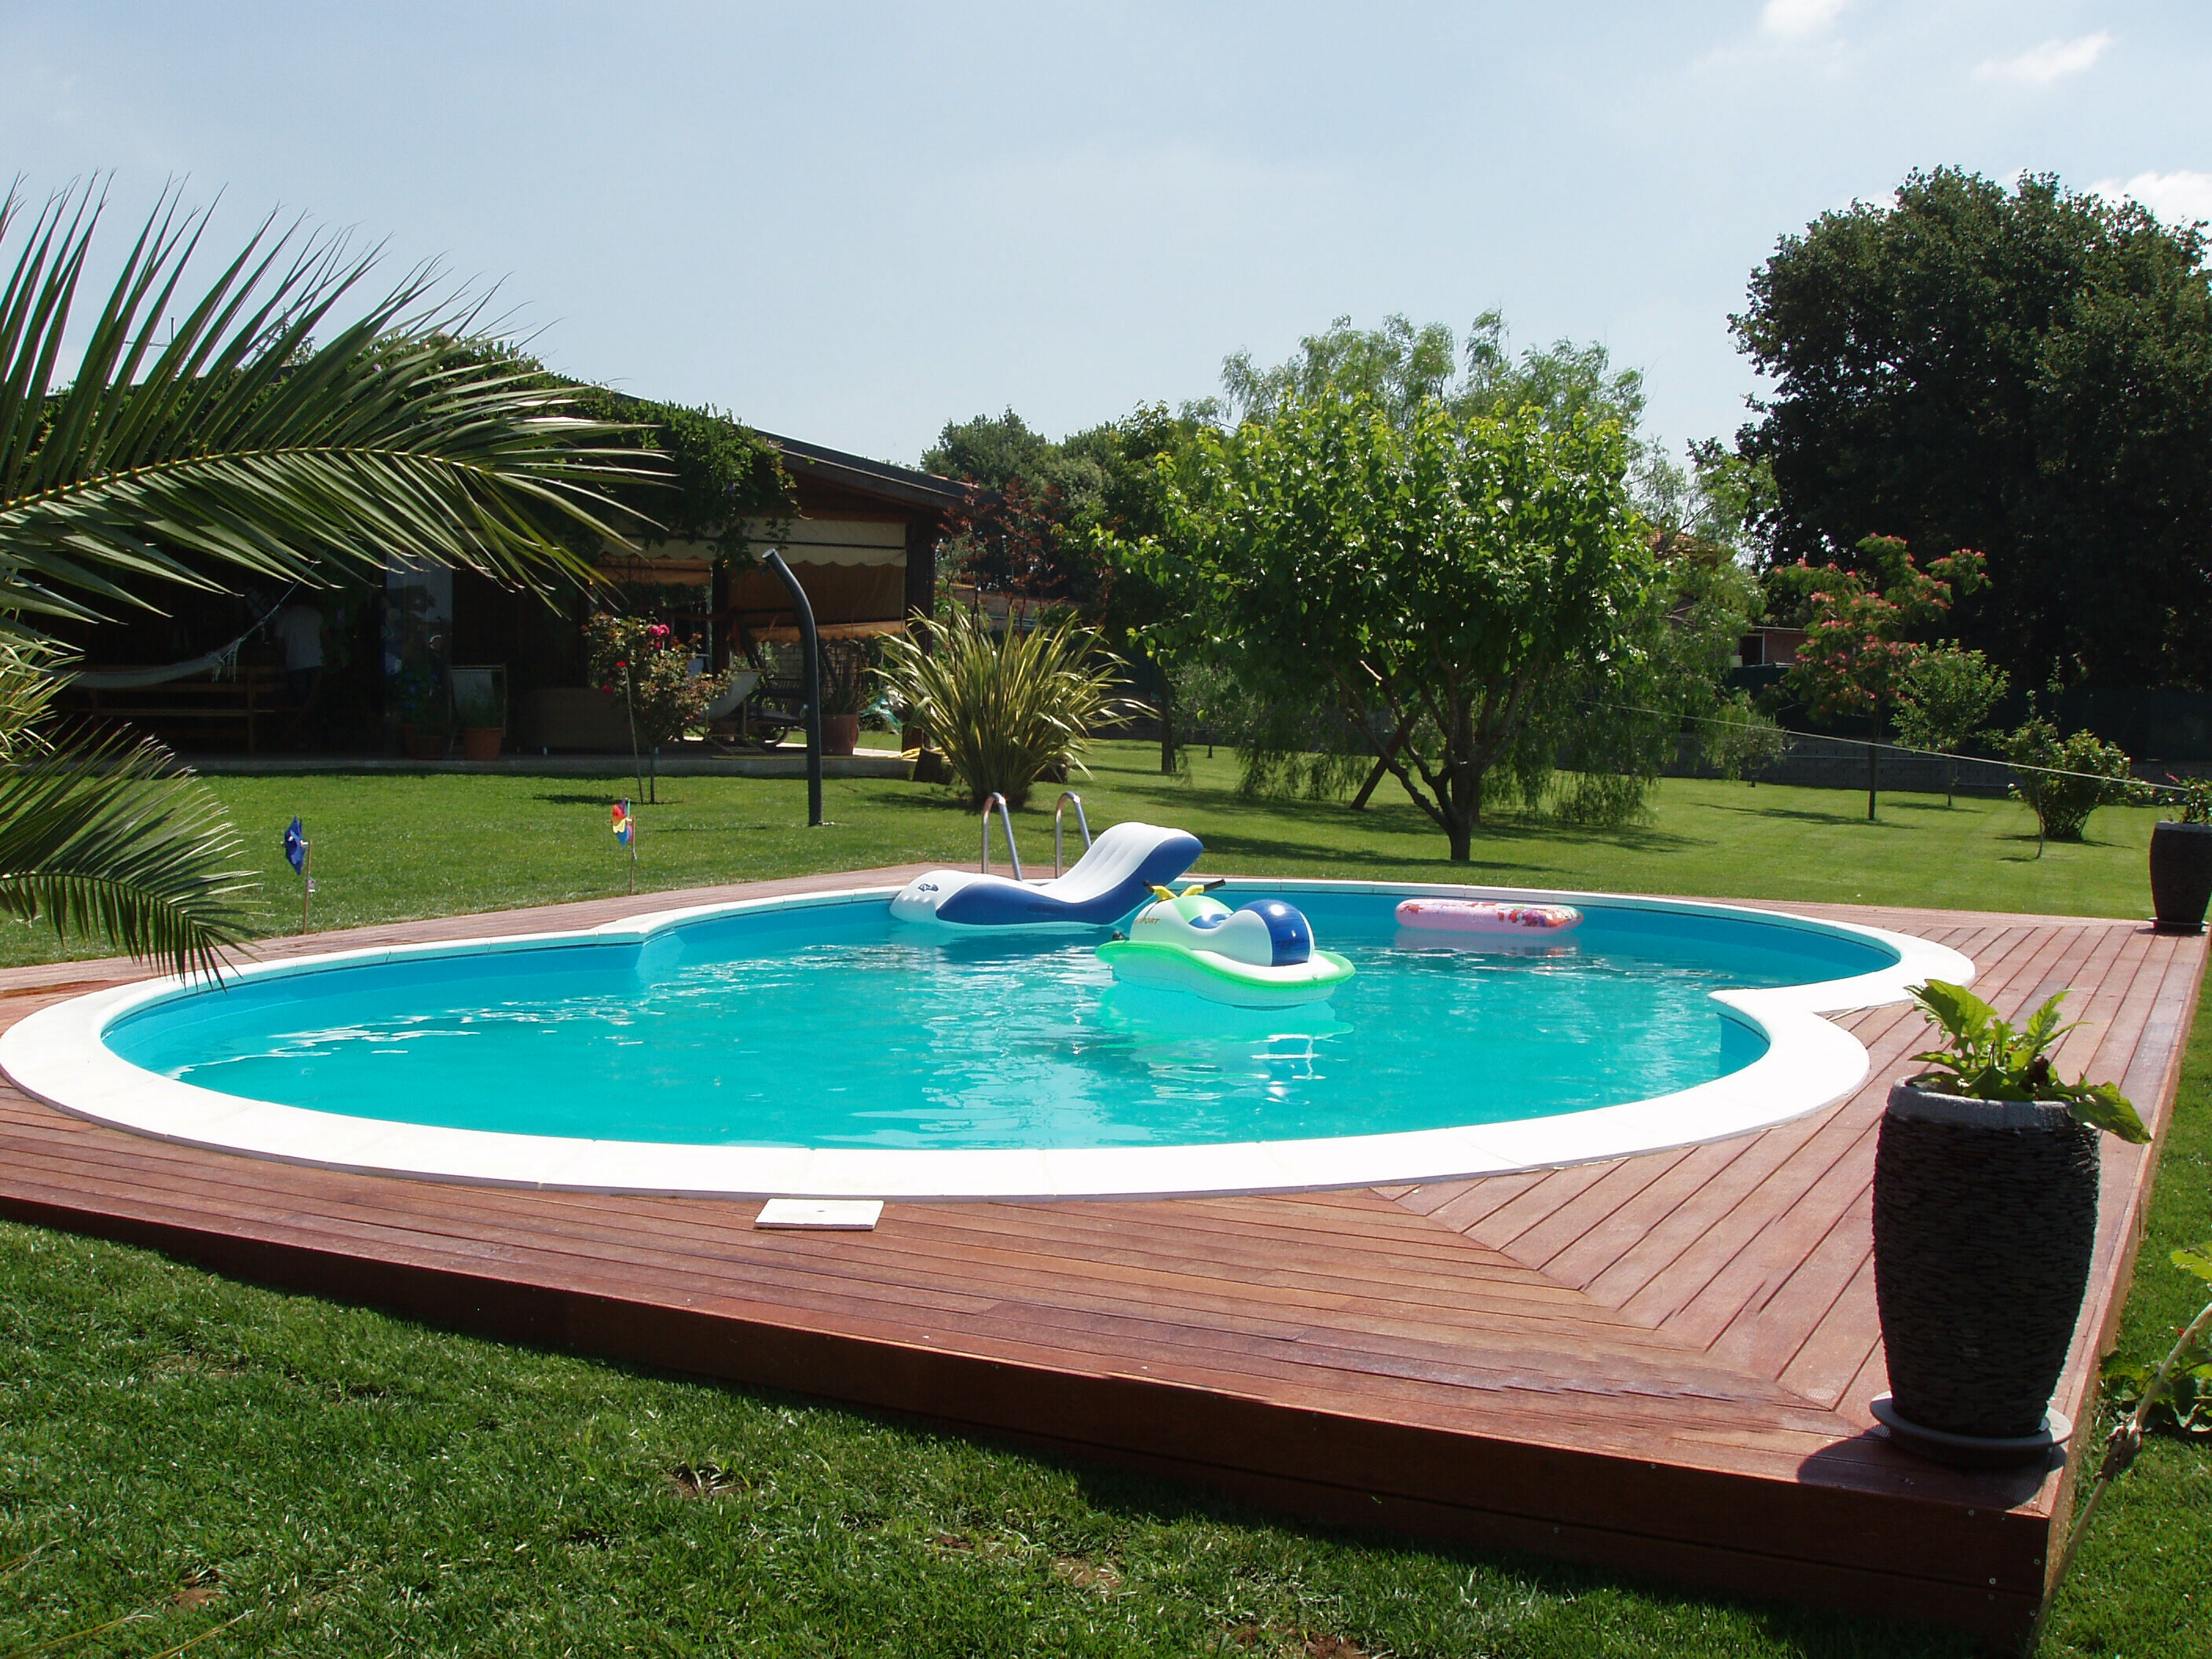 piscine interrate jollygame piscine e accessori